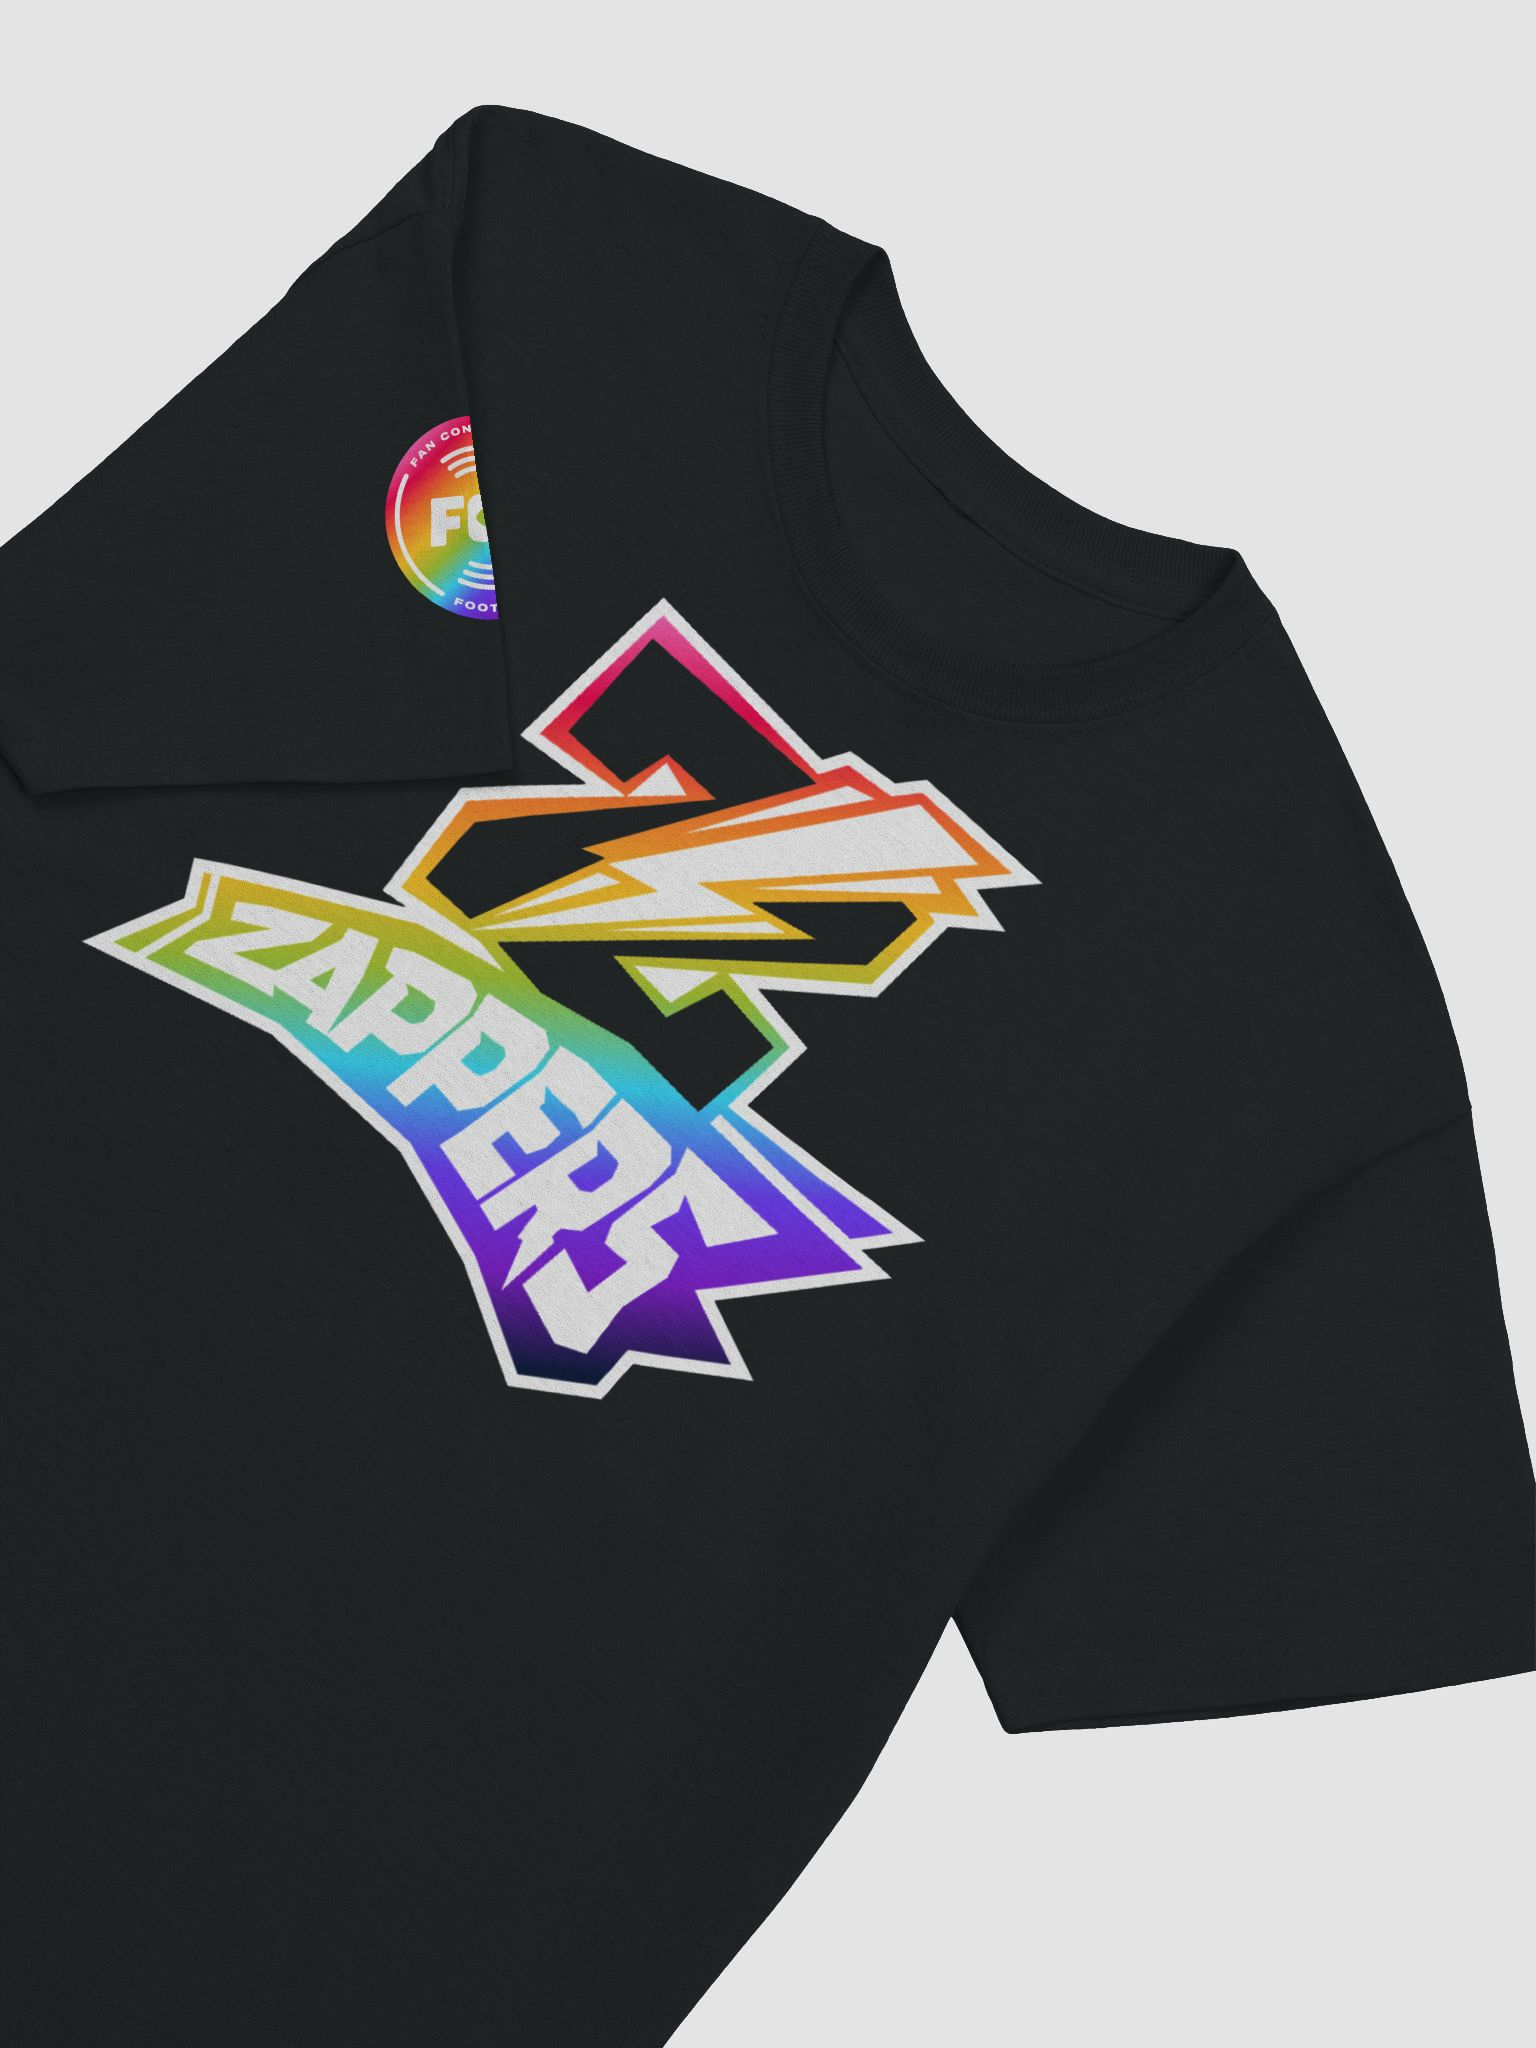 Zappers Pride Tee product image (1)